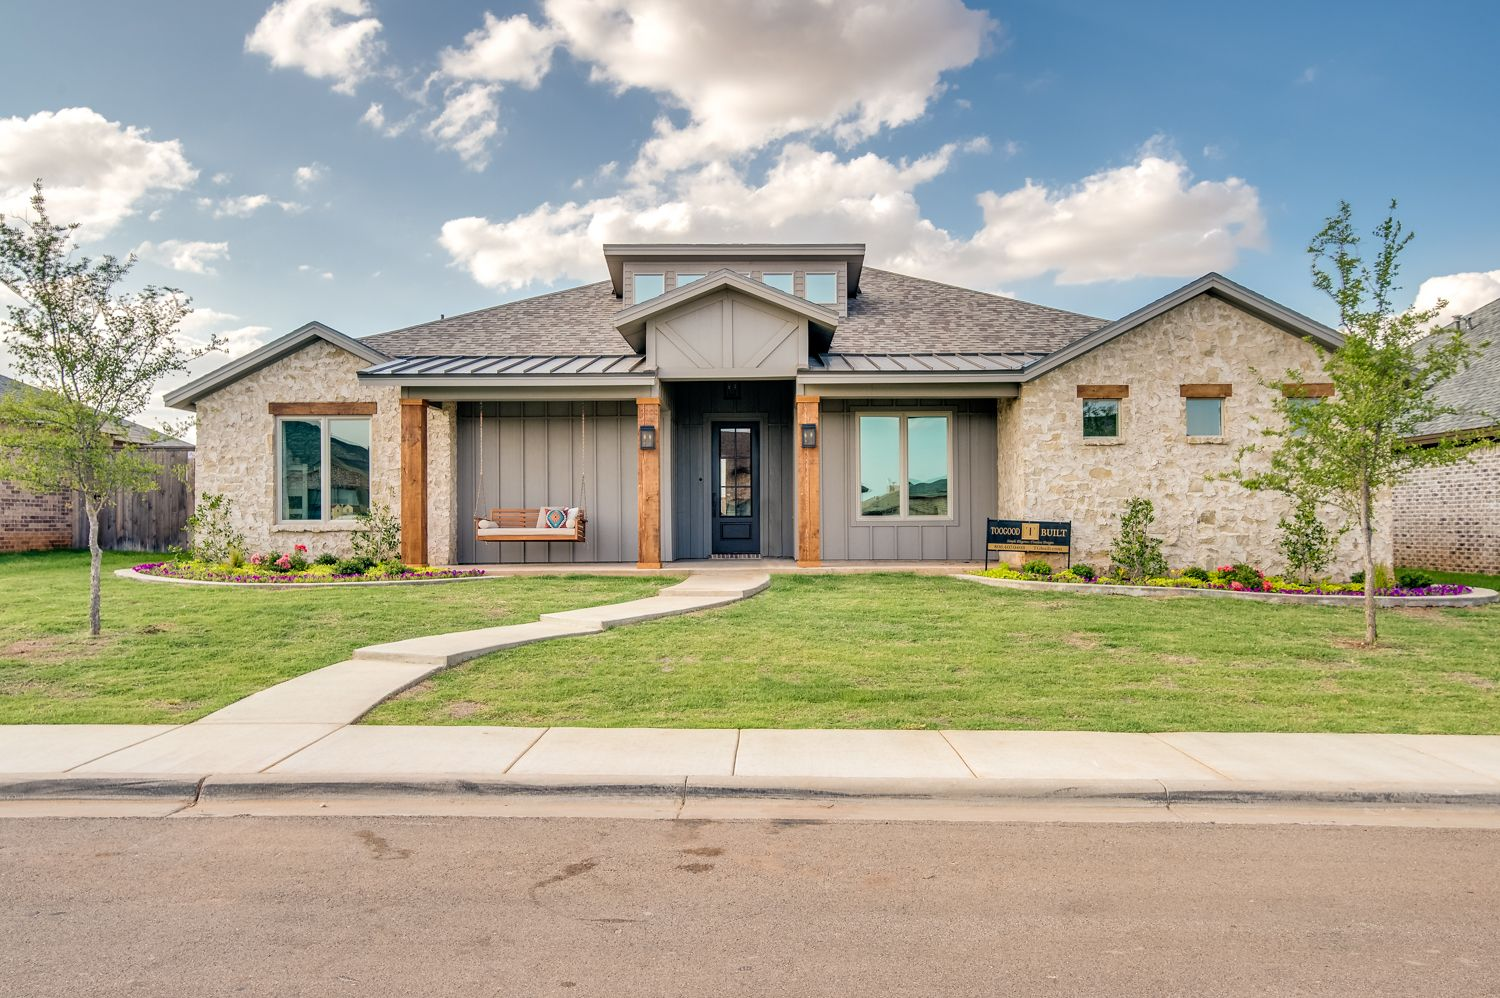 With A Generous Front Porch And Natural Stone This Inviting Home Beacons Friend And Family Inviting Home Home Focus House Styles